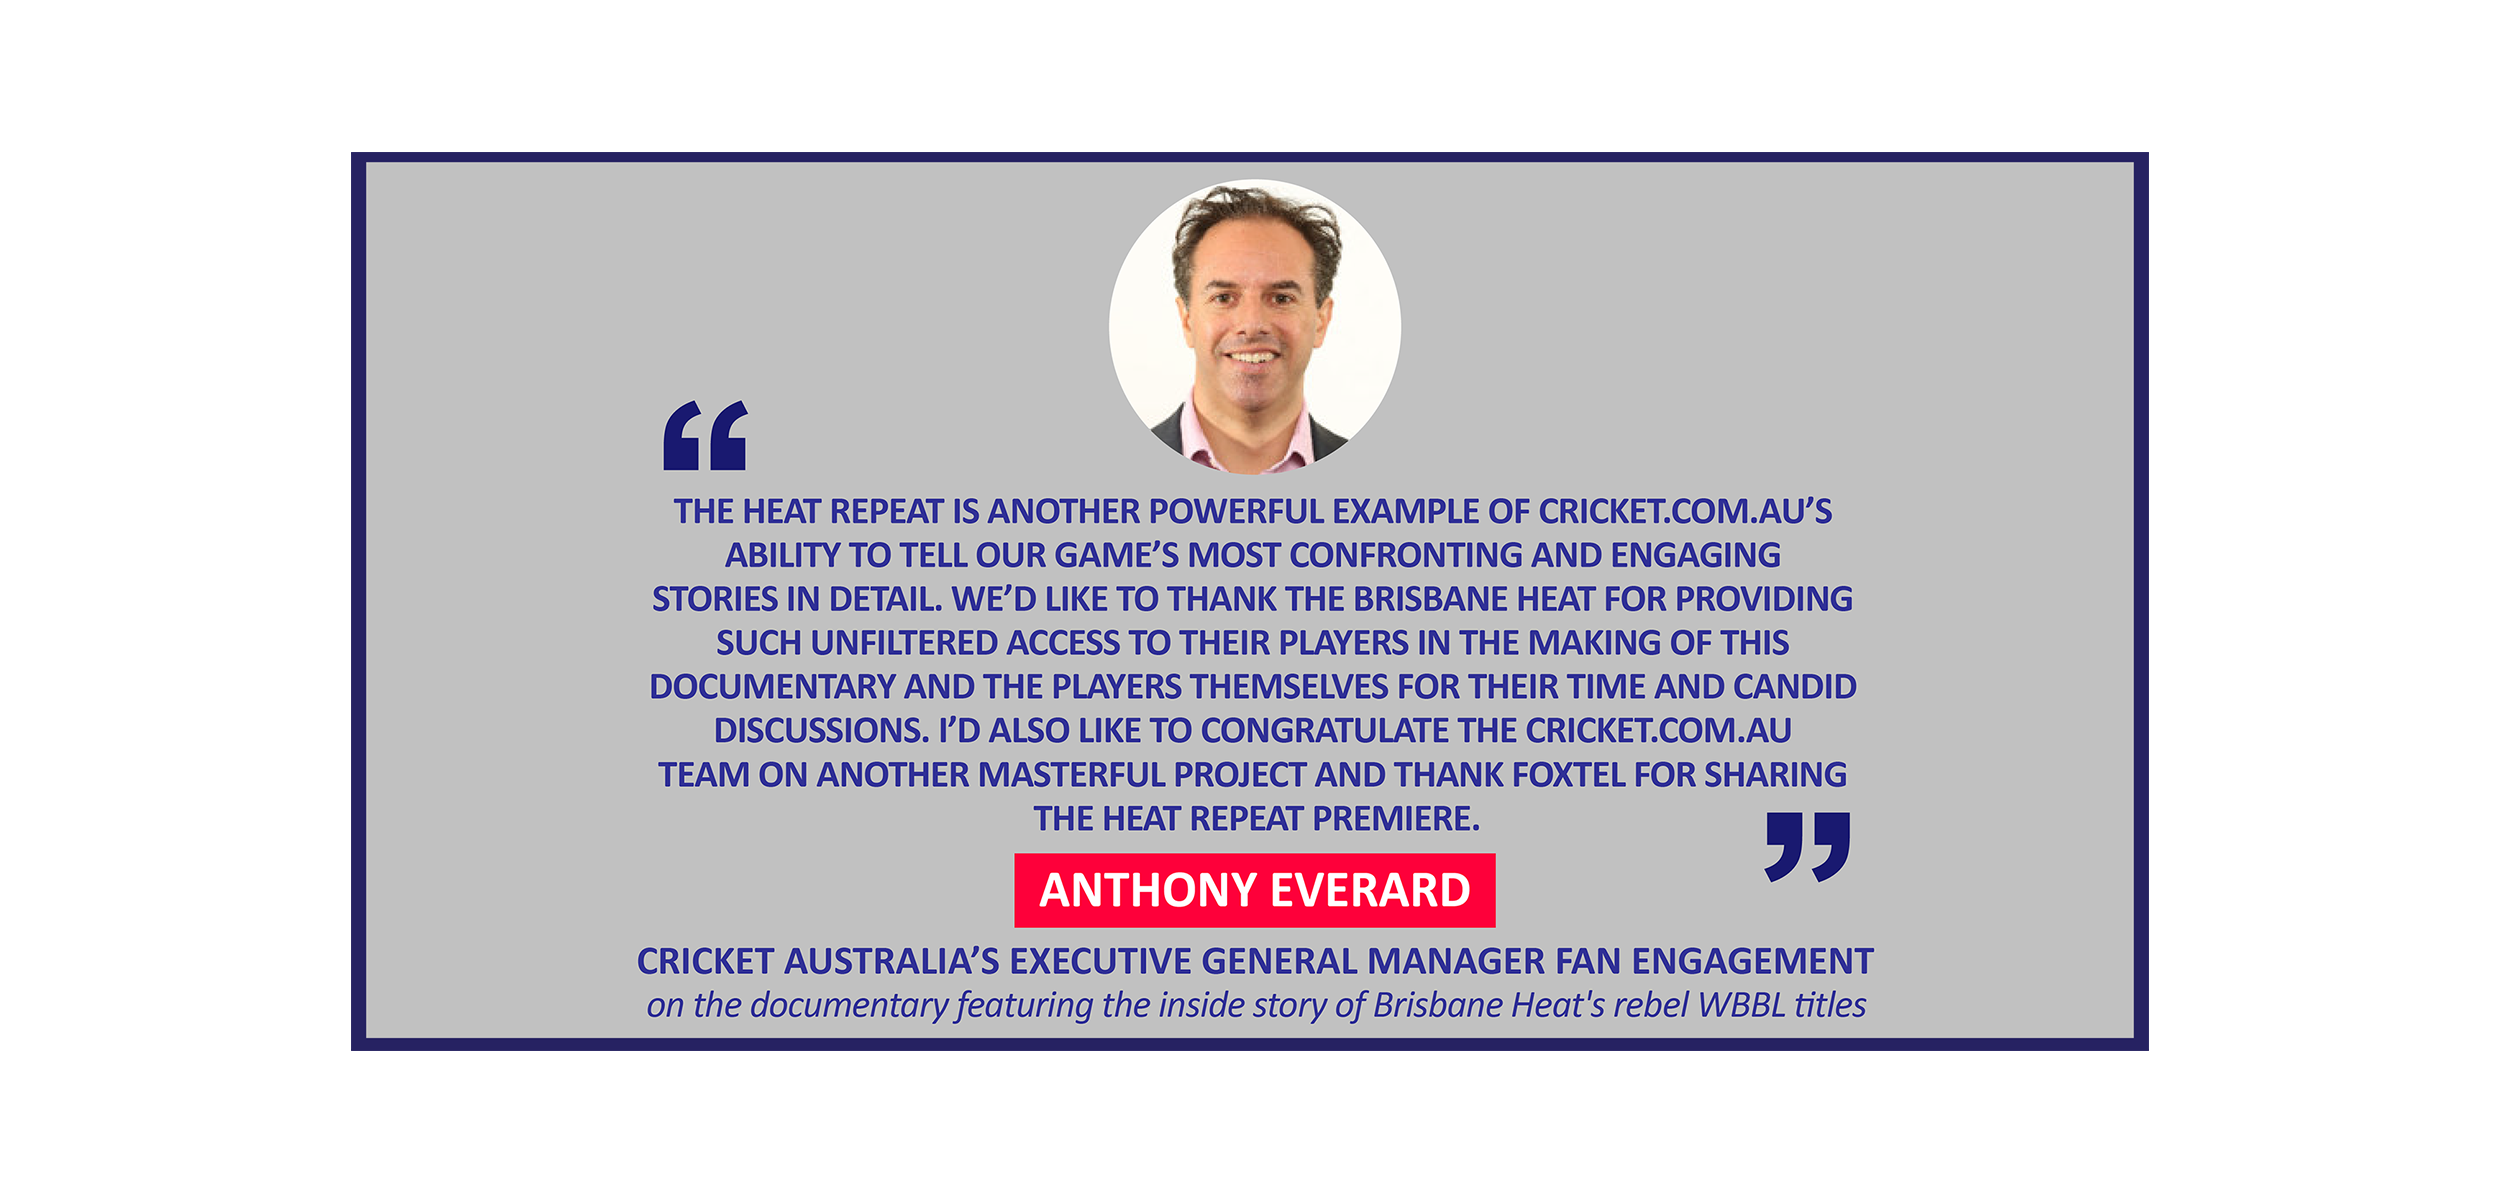 Anthony Everard, Cricket Australia's Executive General Manager Fan Engagement on the documentary featuring the inside story of Brisbane Heat's rebel WBBL titles